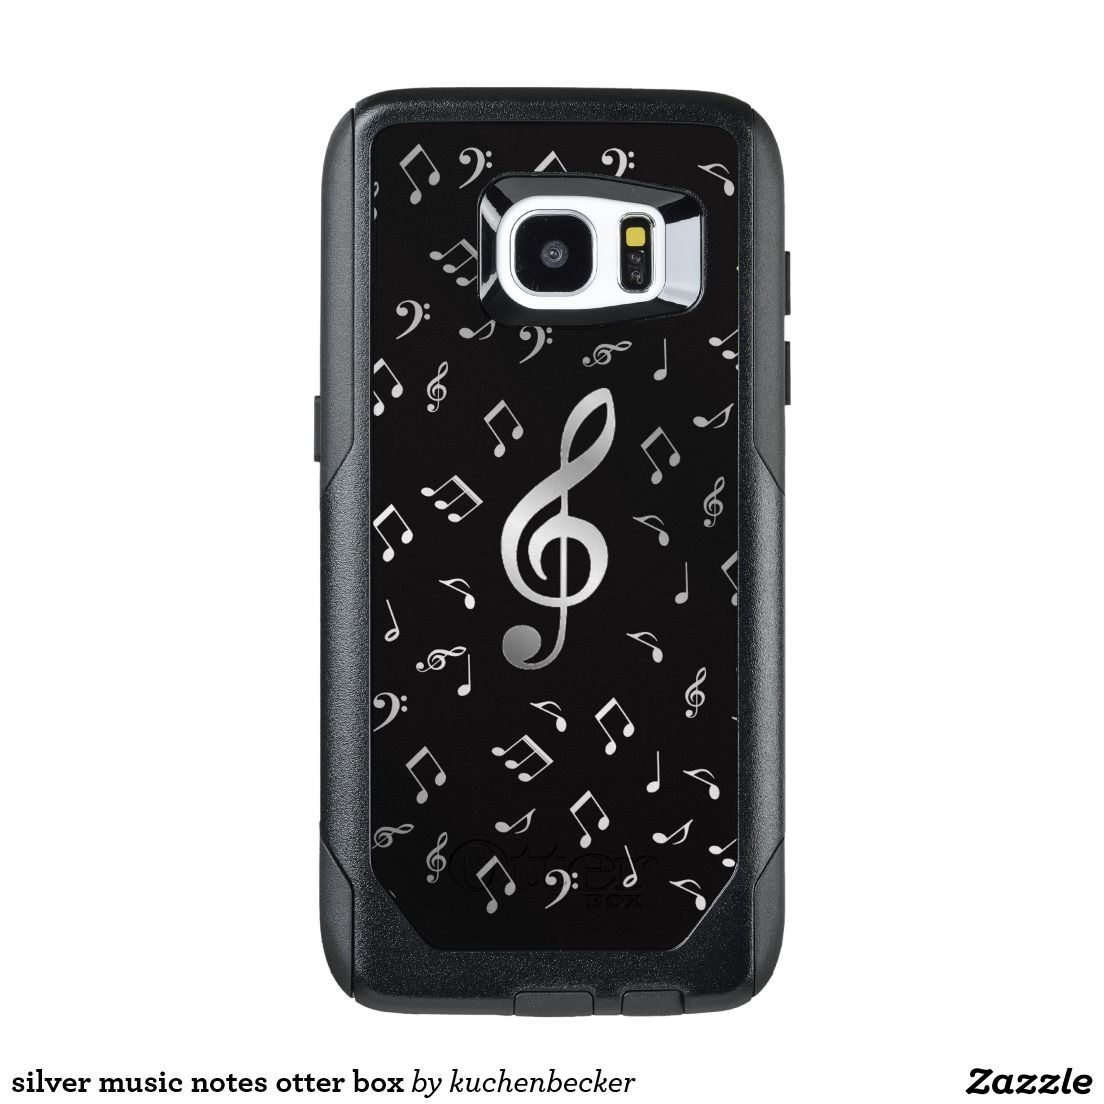 Silver Music Notes Otter Box Otterbox Samsung Galaxy S7 Edge Case Galaxy S7 Phone Cases Otterbox Cases Samsung Samsung Phone Cases